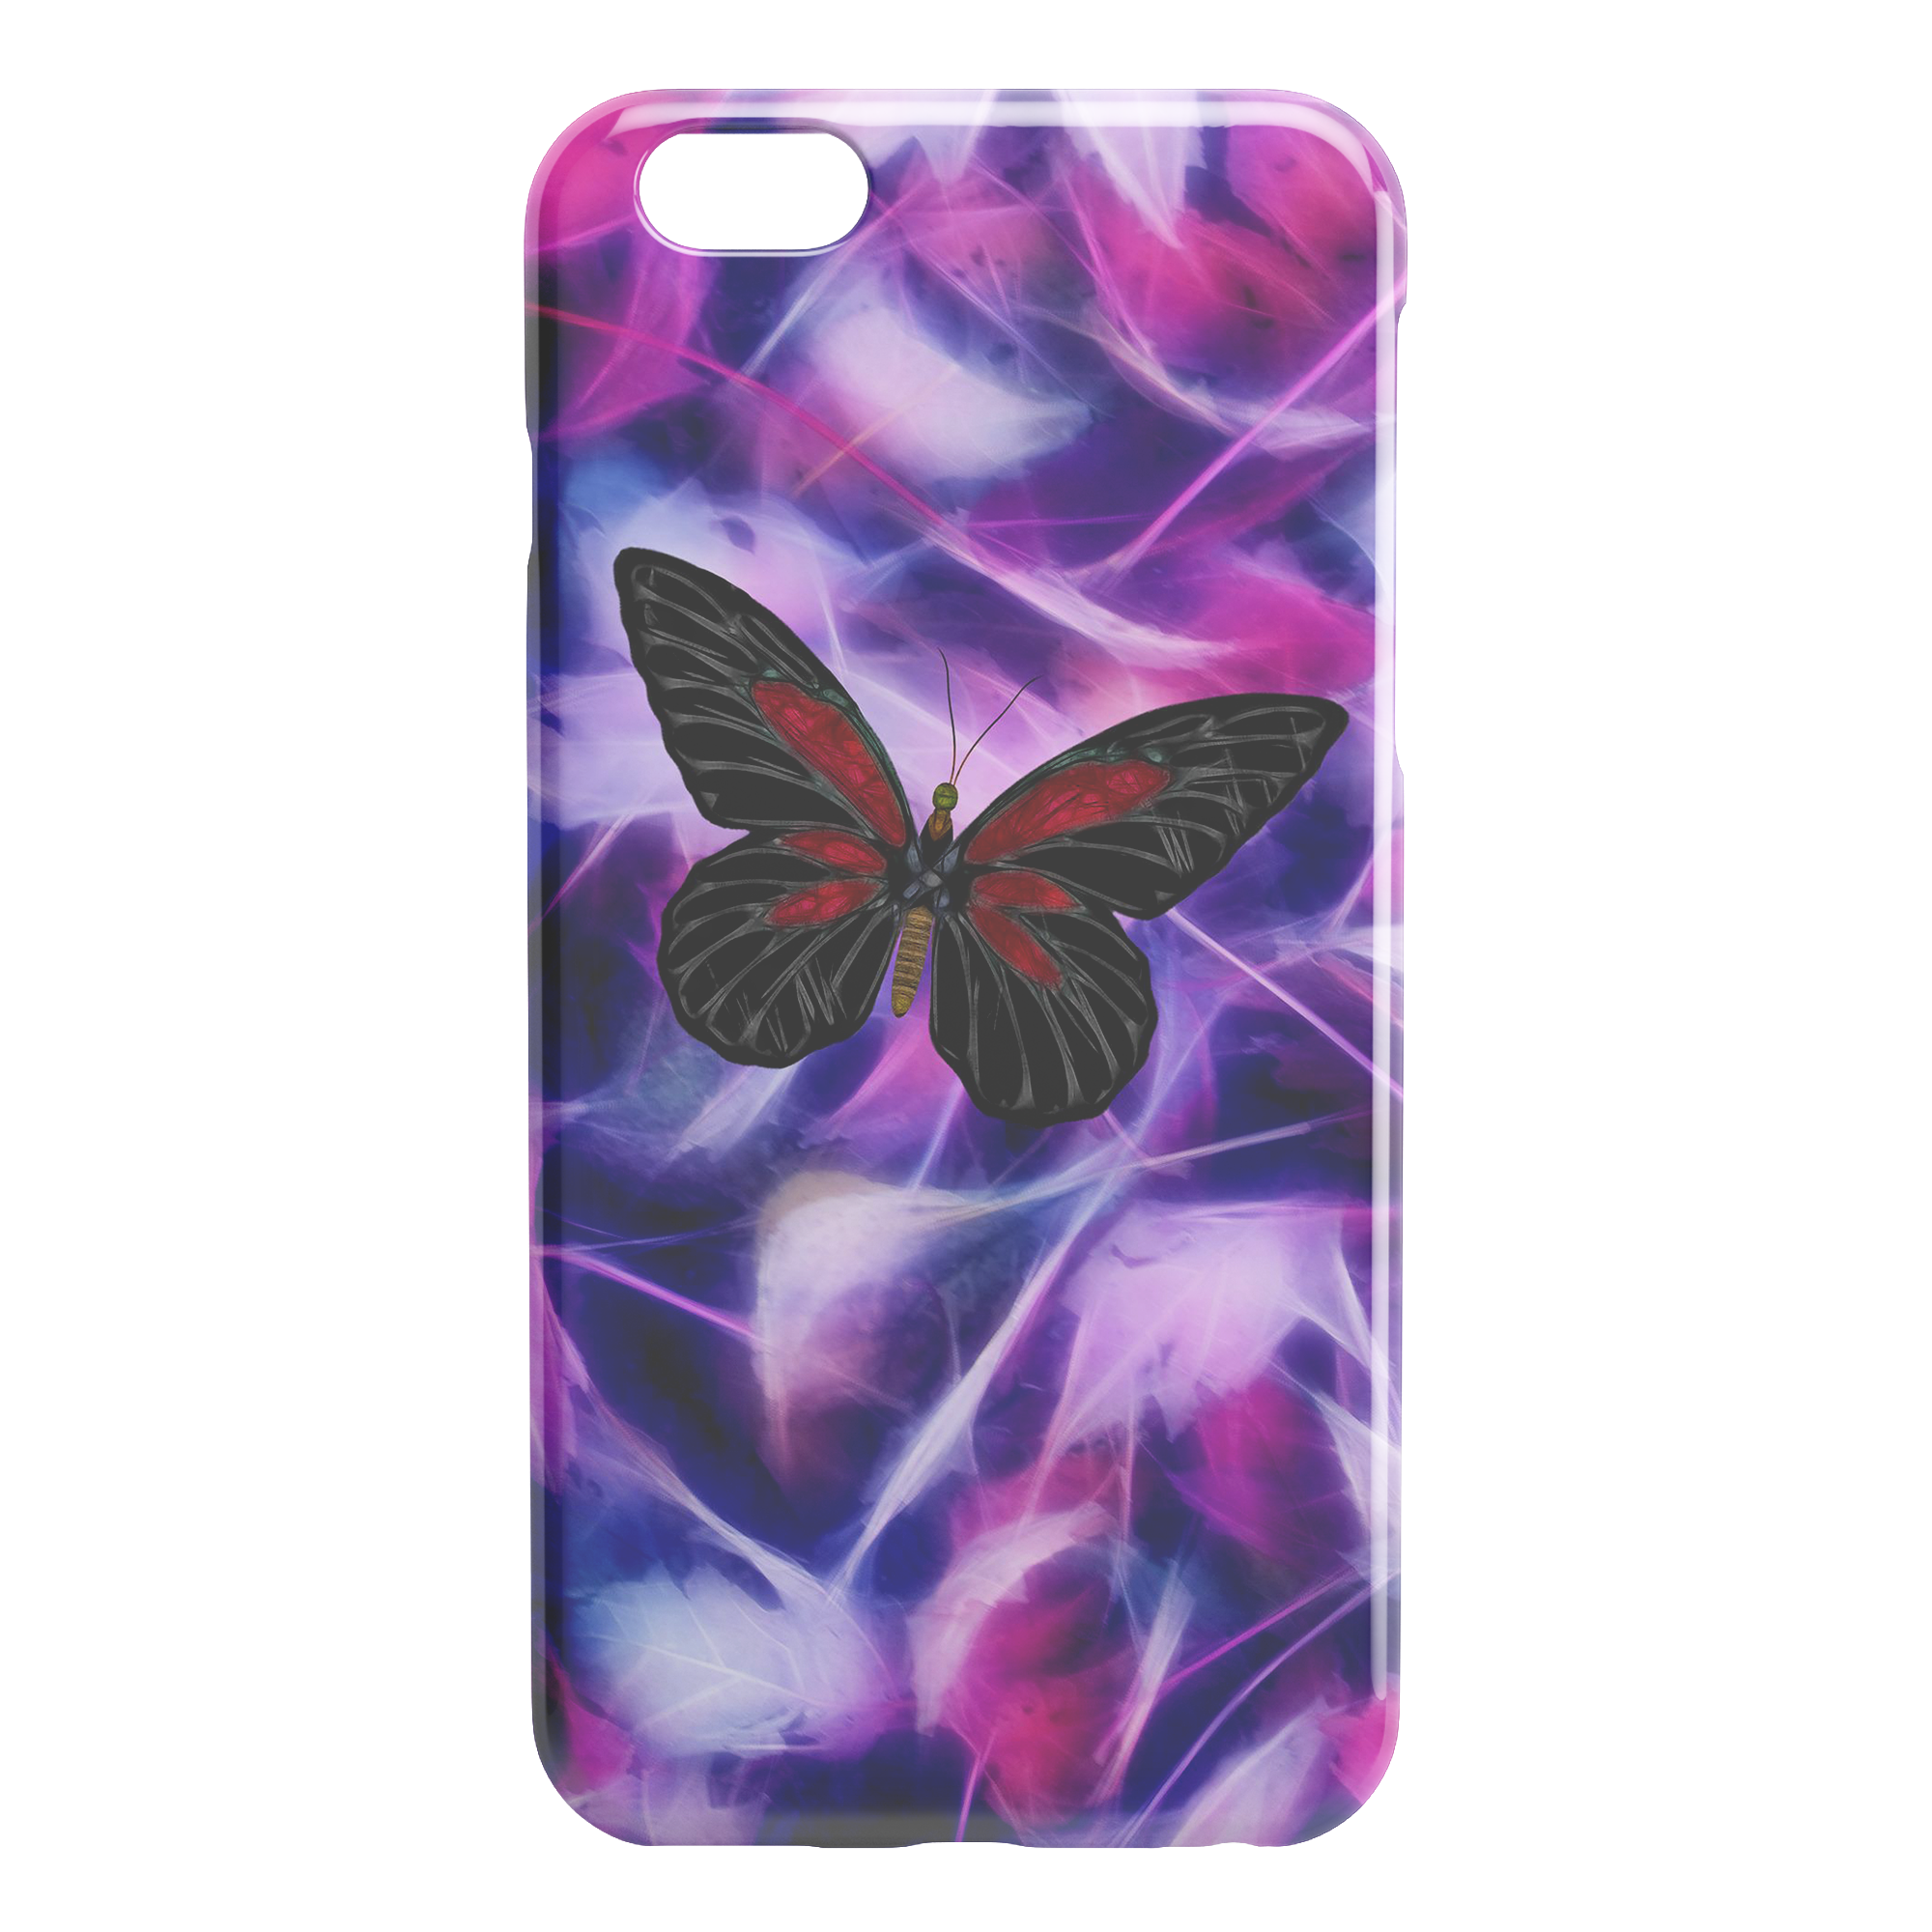 Butterfly 1 - iPhone case